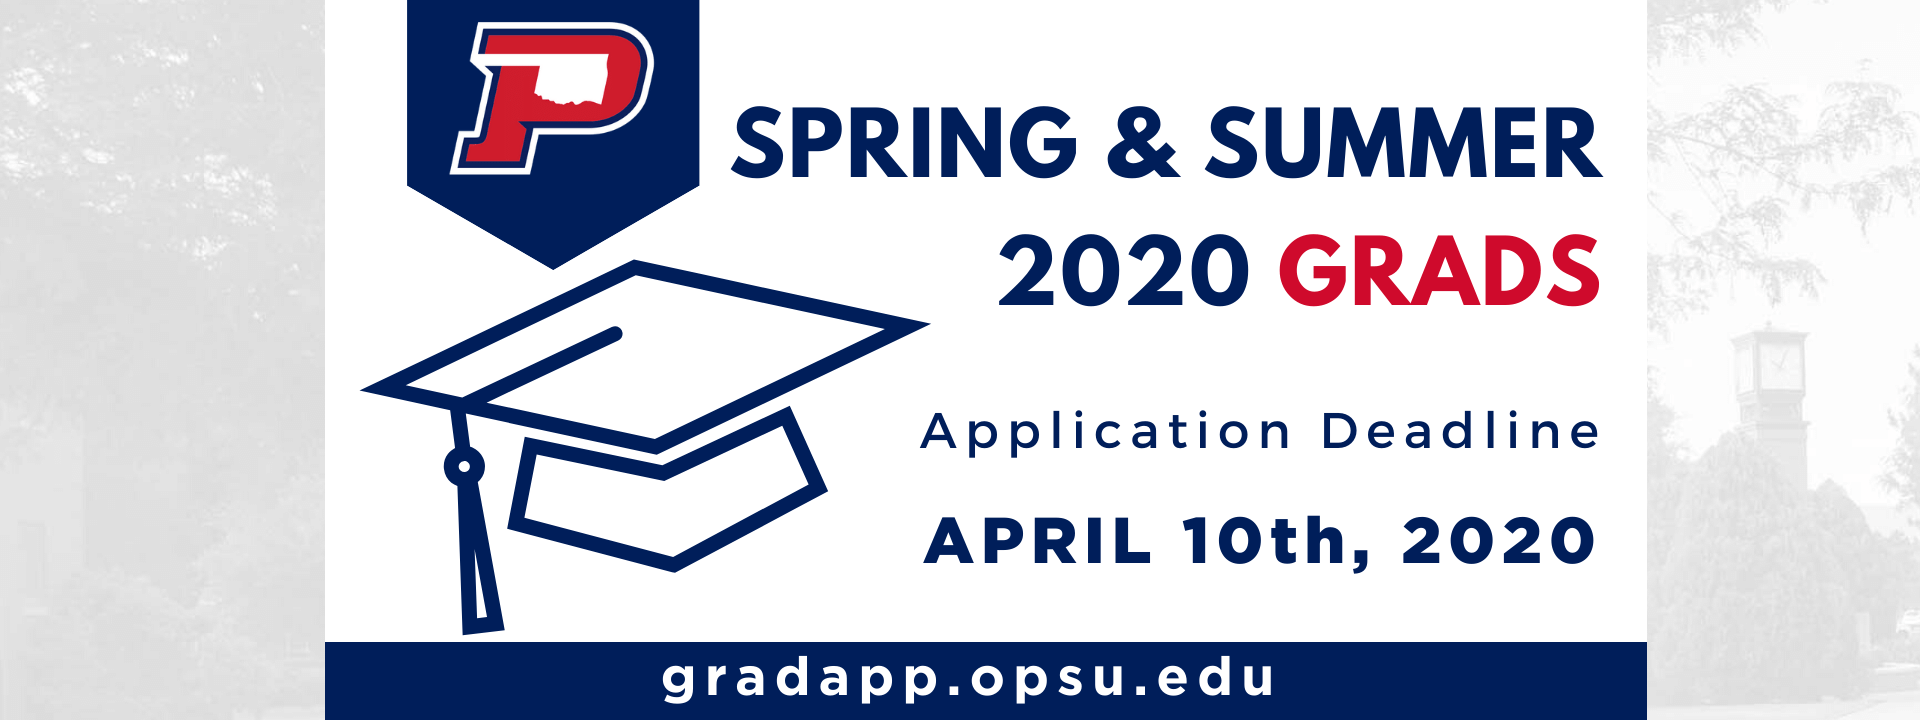 Spring and Summer 2020 Grads - Application Deadline - April 10th, 2020